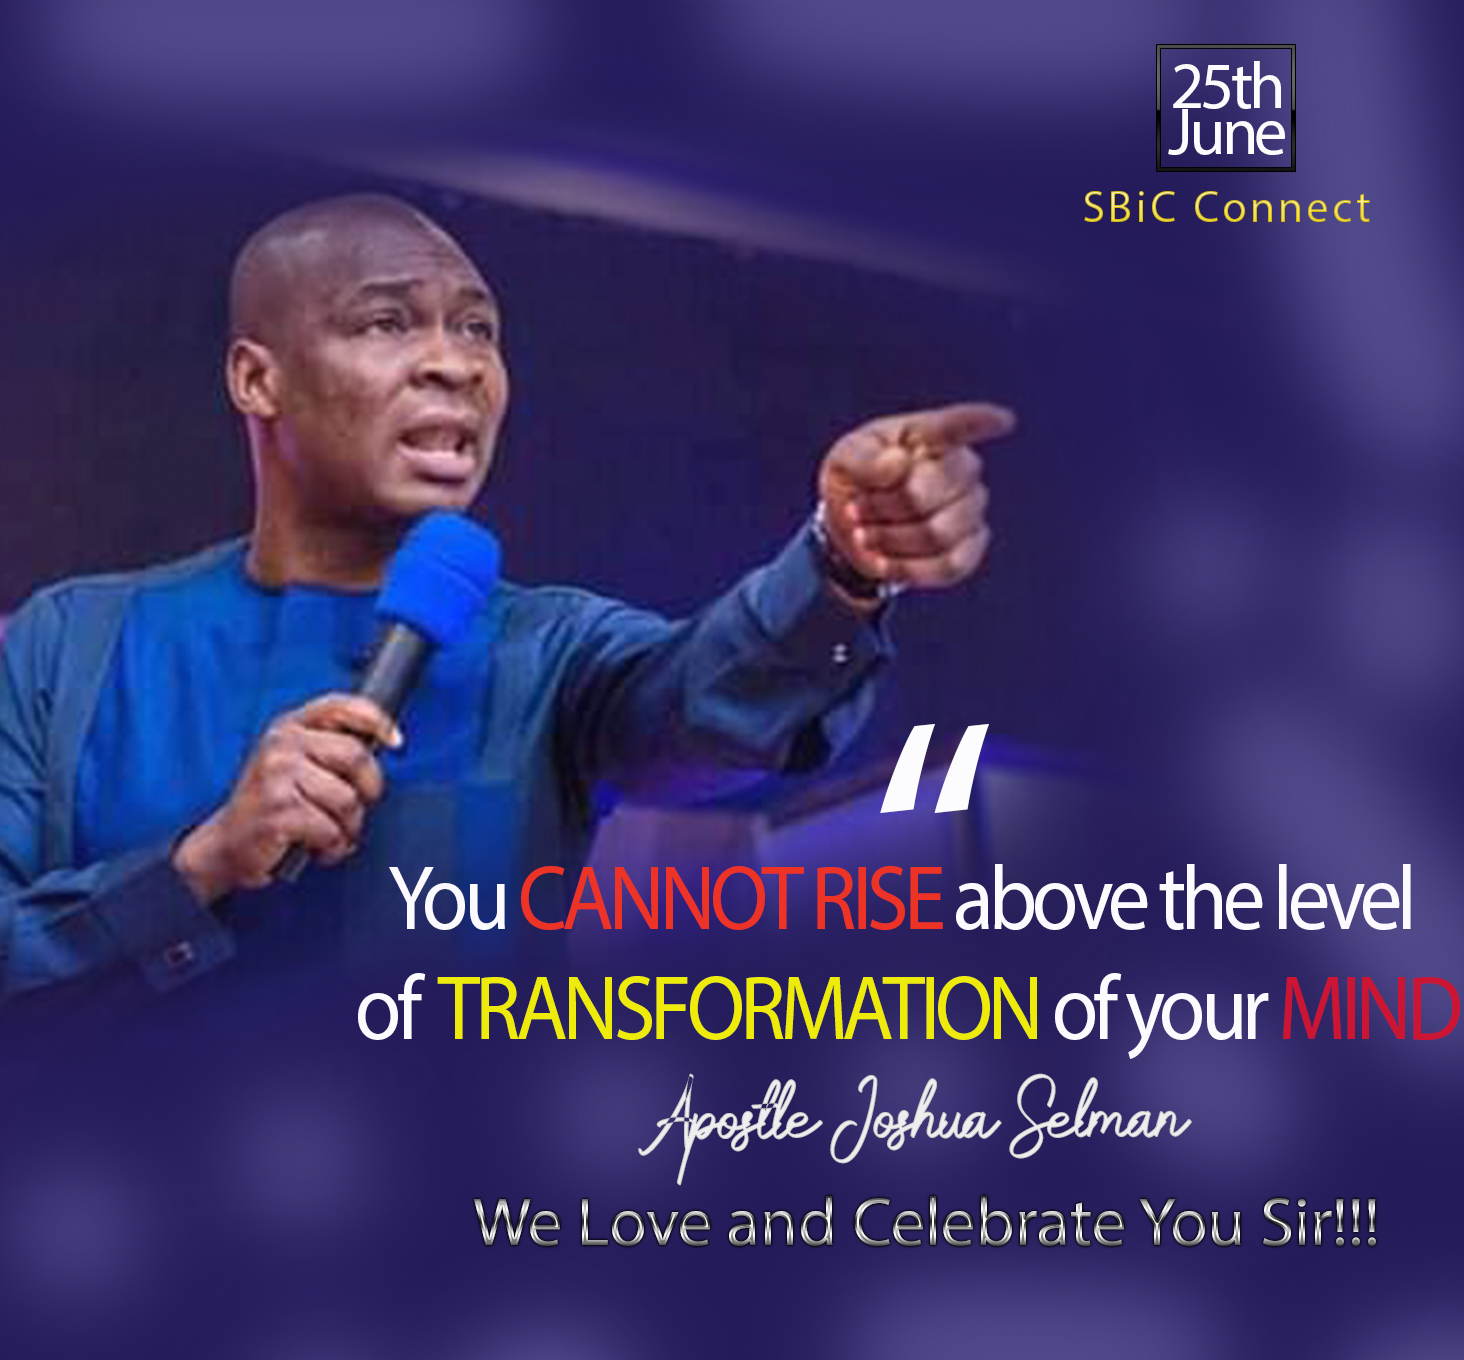 How I Met Apostle Joshua Selman and His Messages That Blessed Me By Emeka Uche